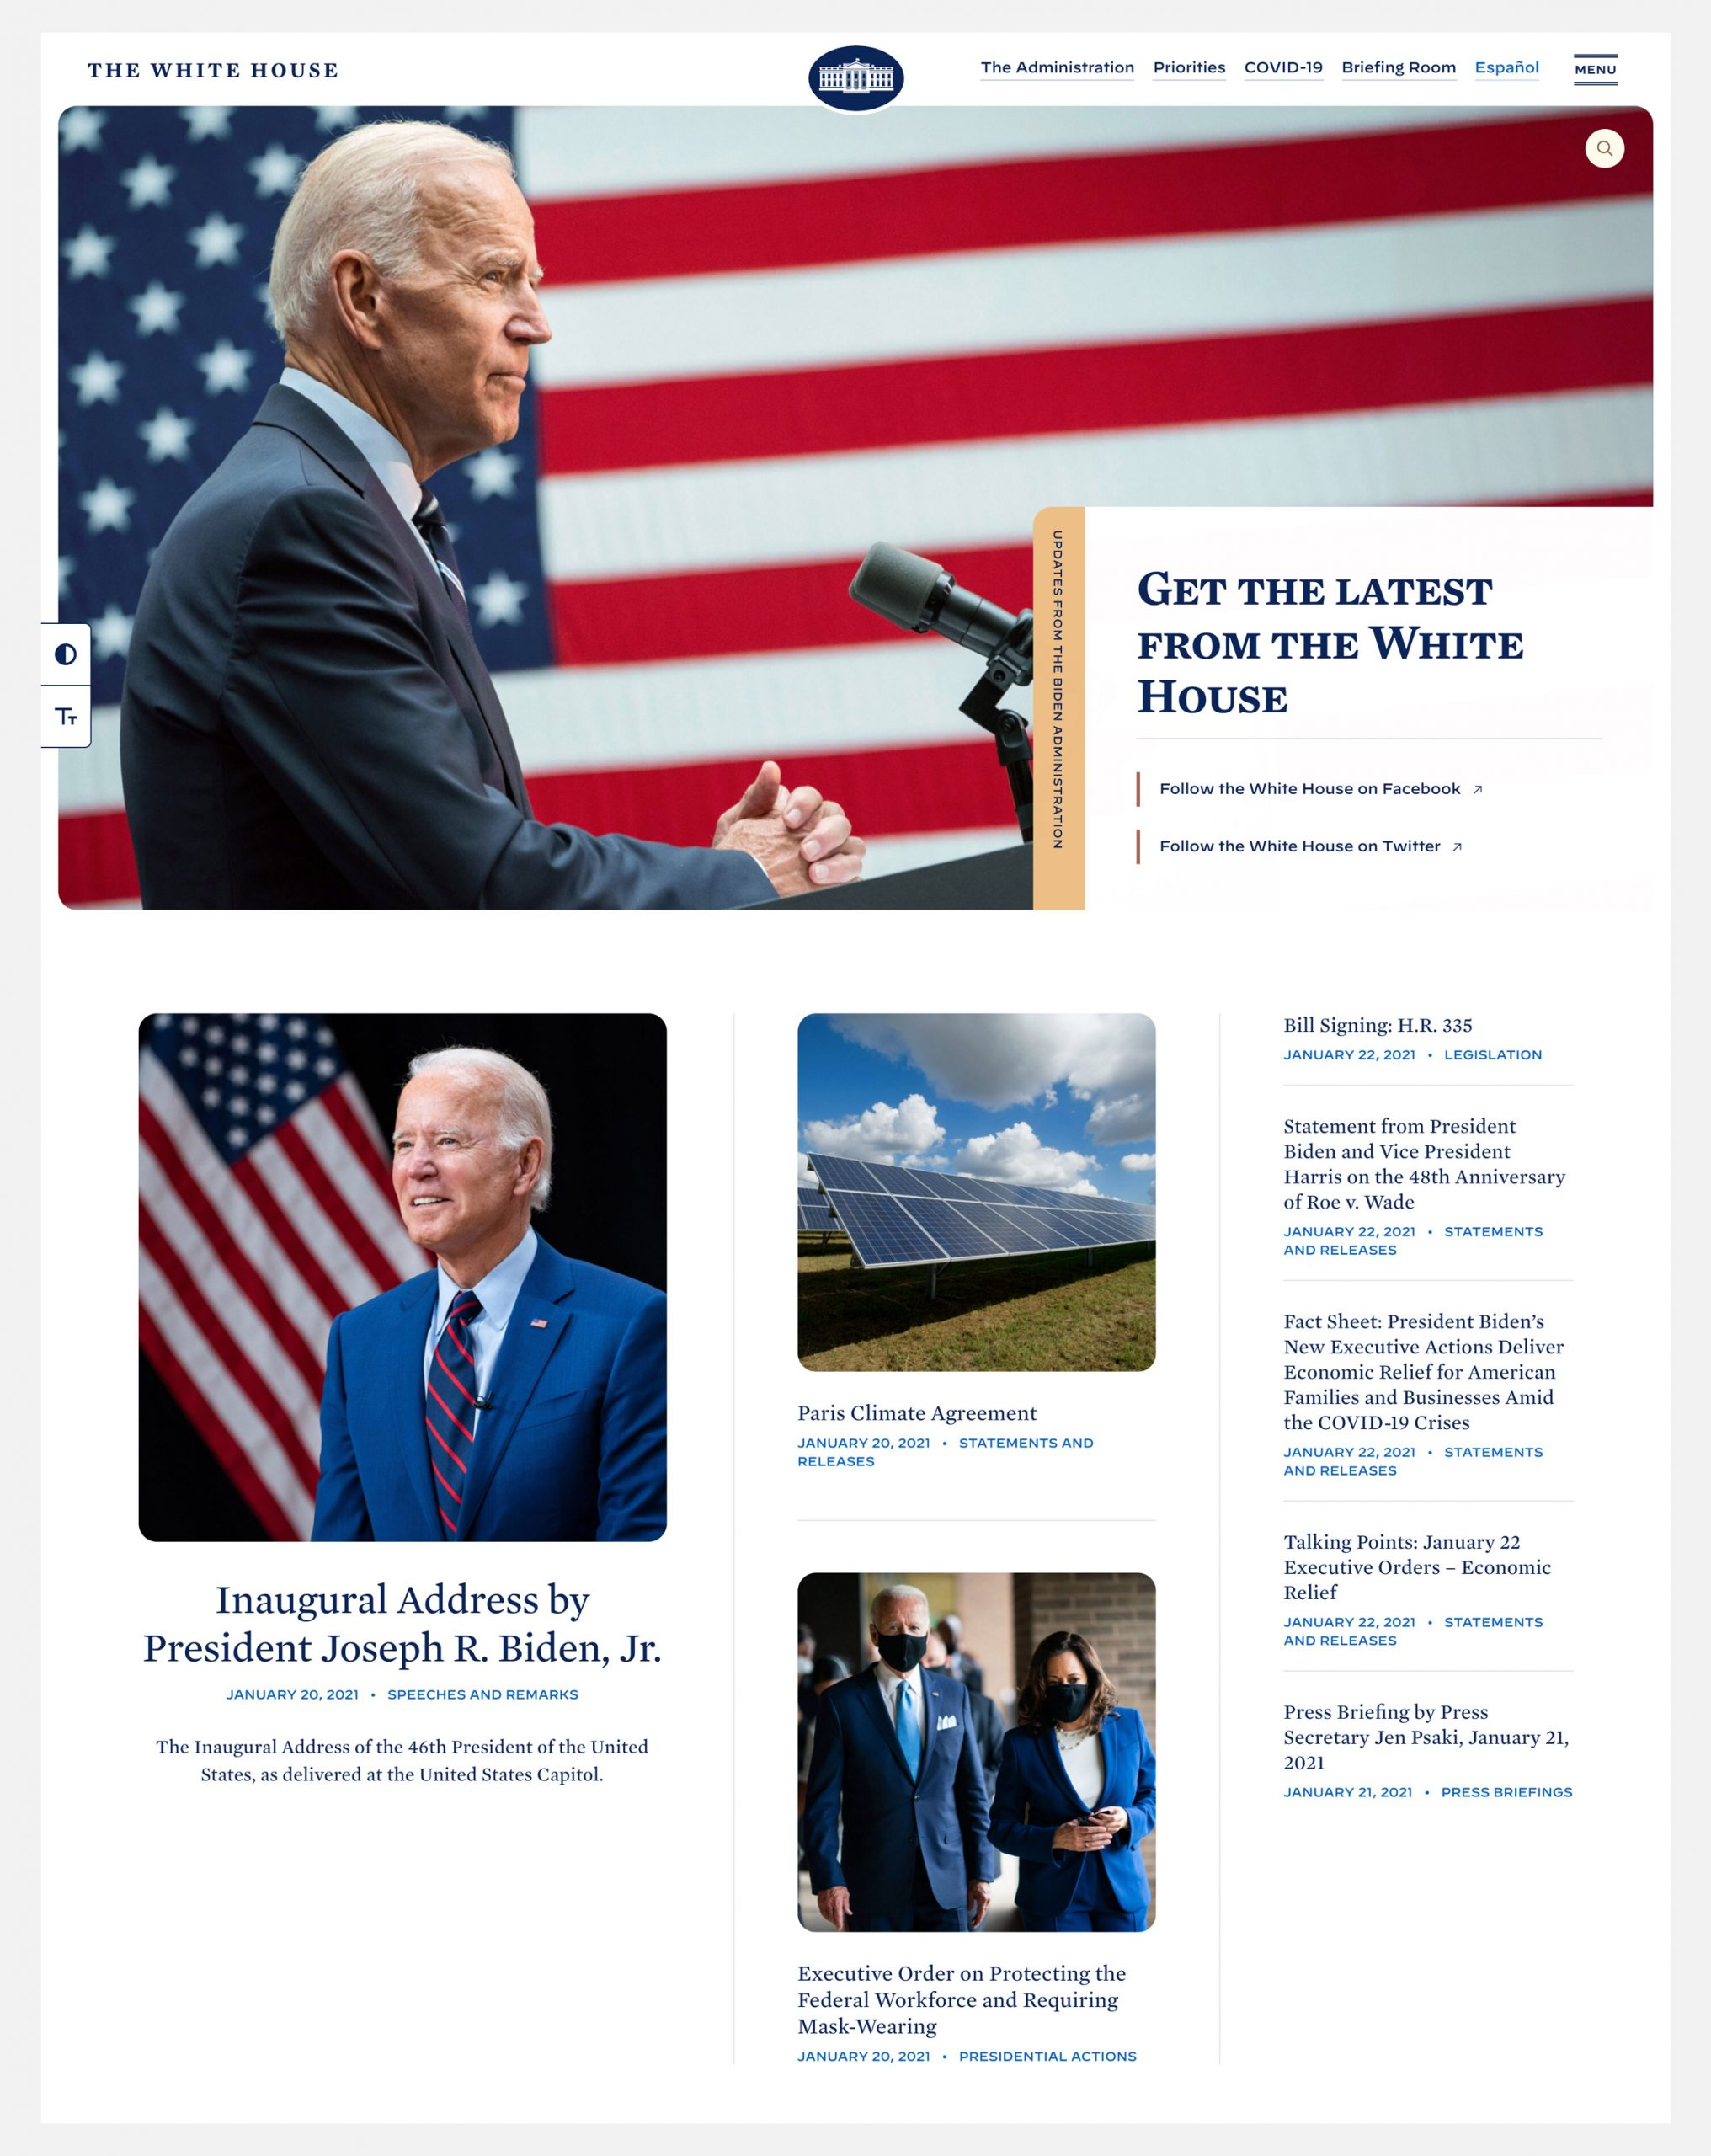 White House website design featuring the new logo